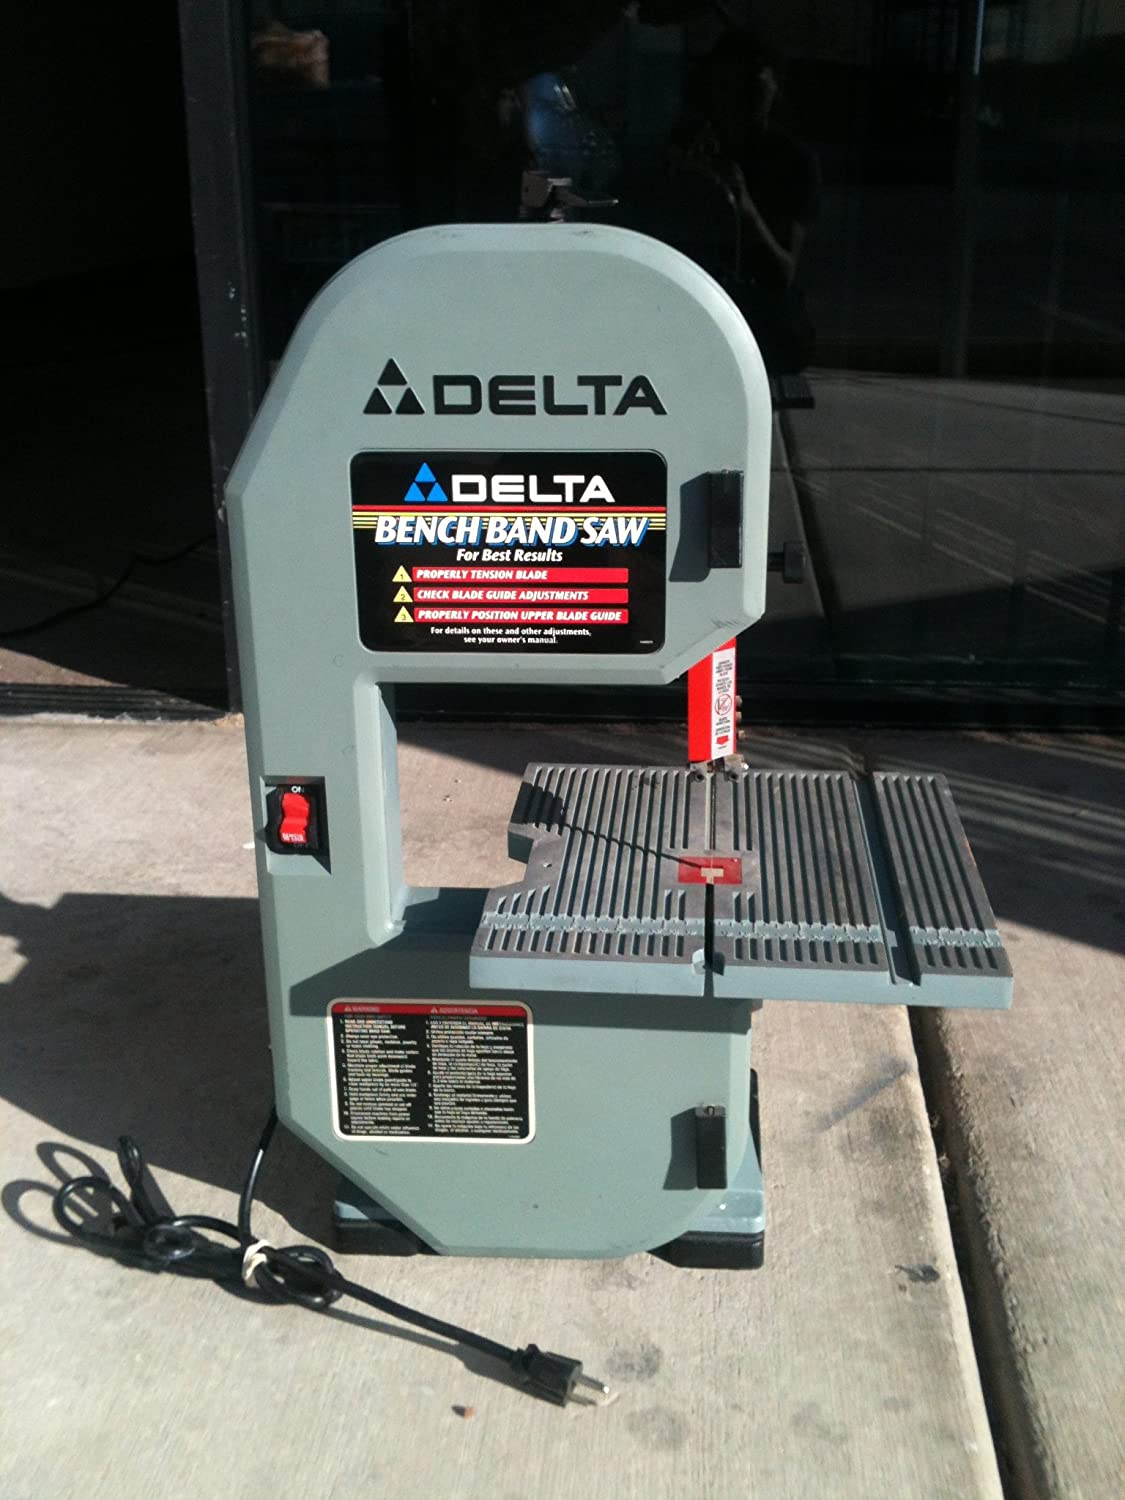 Awesome Delta Bench Band Saw Model 28-185 Part - 7: Amazon.com